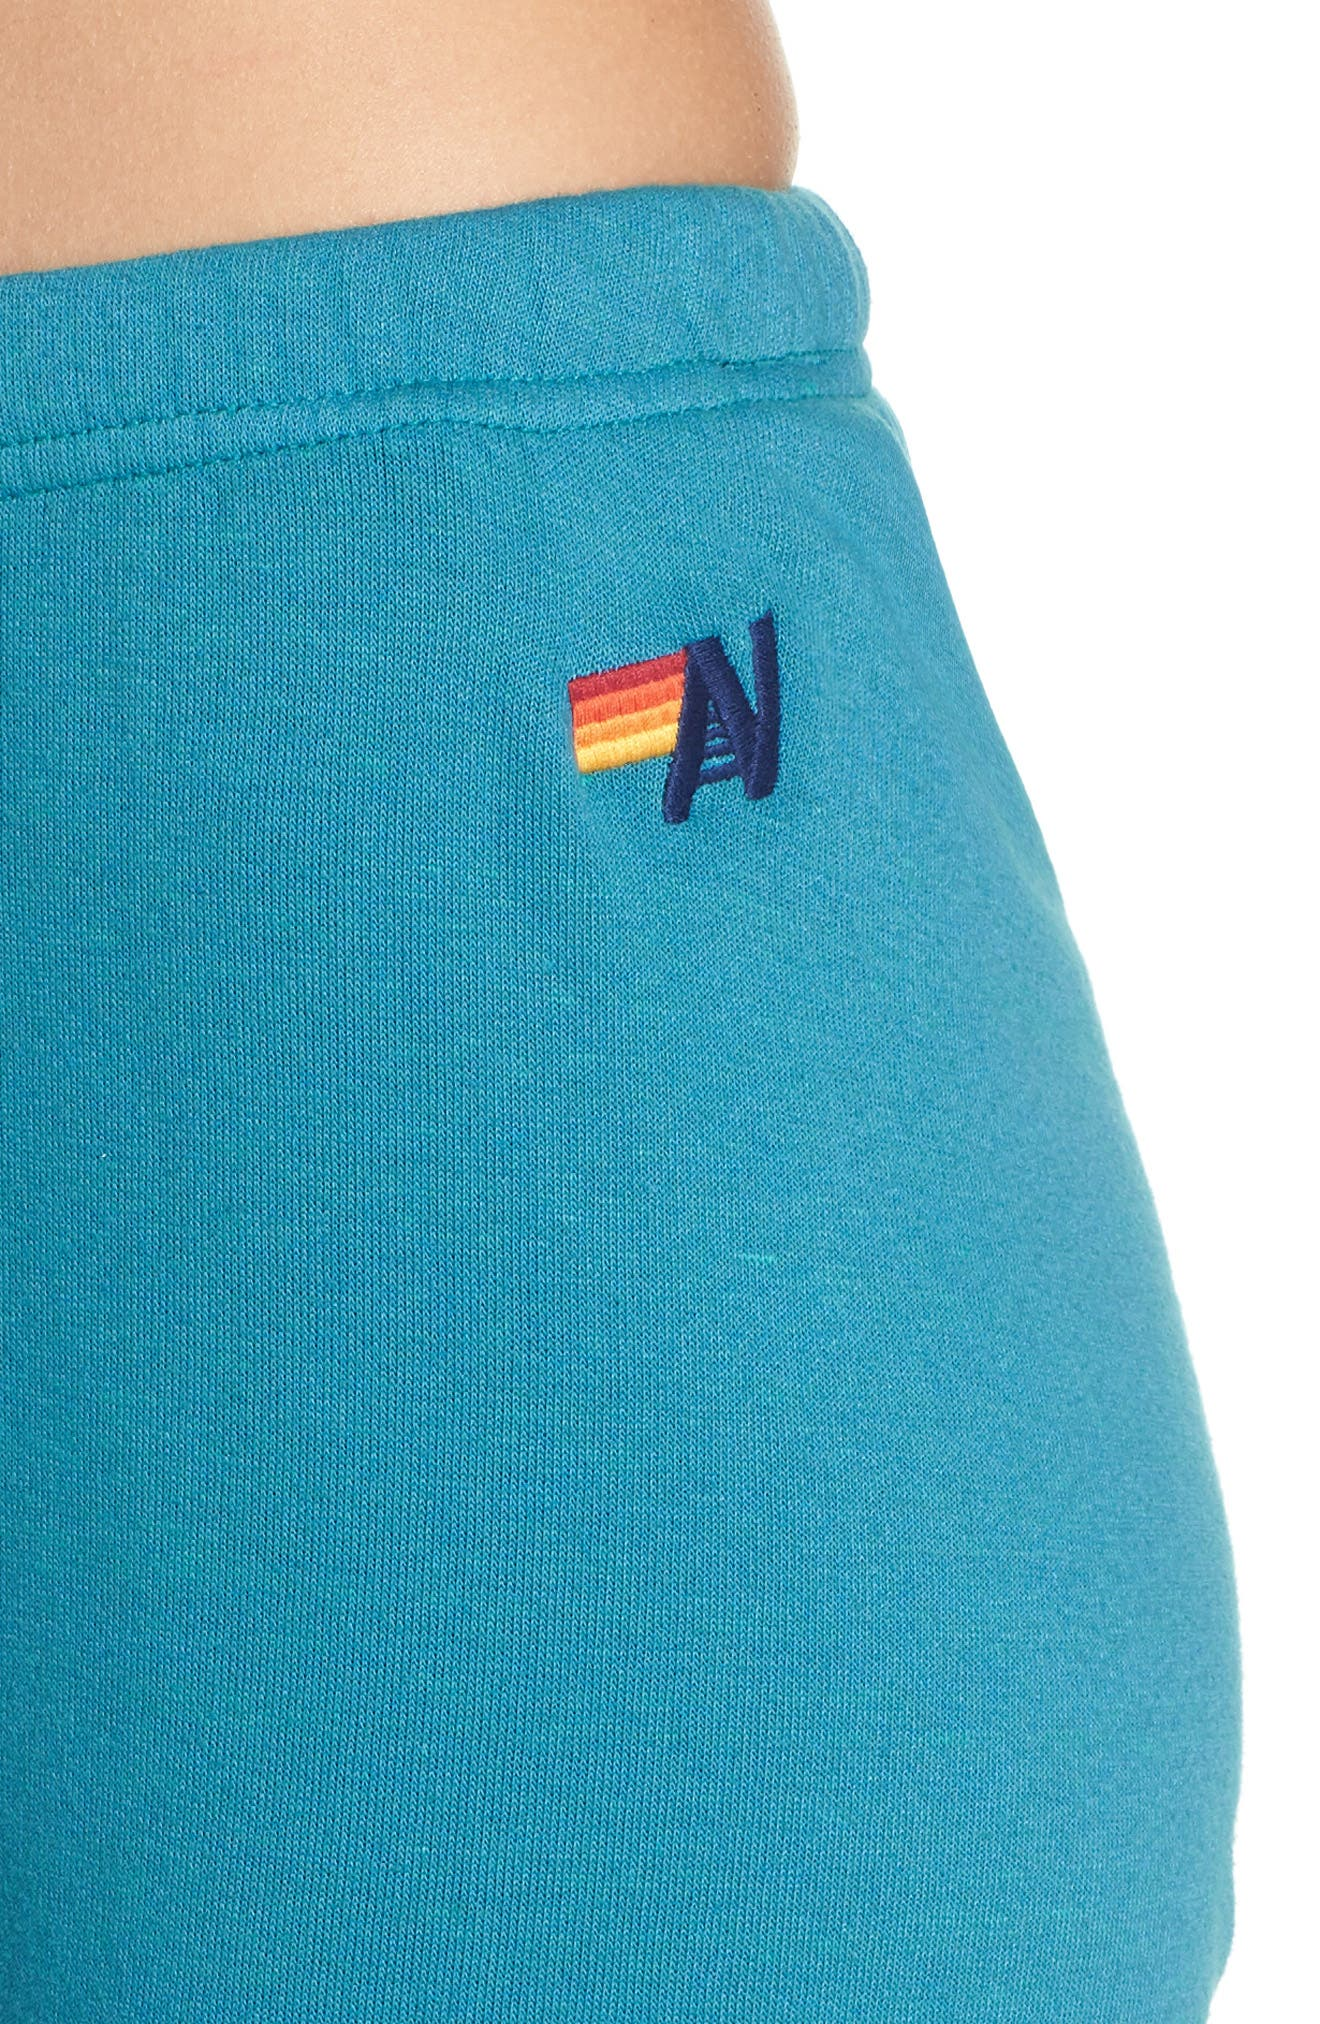 Faded Sweatpants,                             Alternate thumbnail 4, color,                             TEAL / VINTAGE NAVY